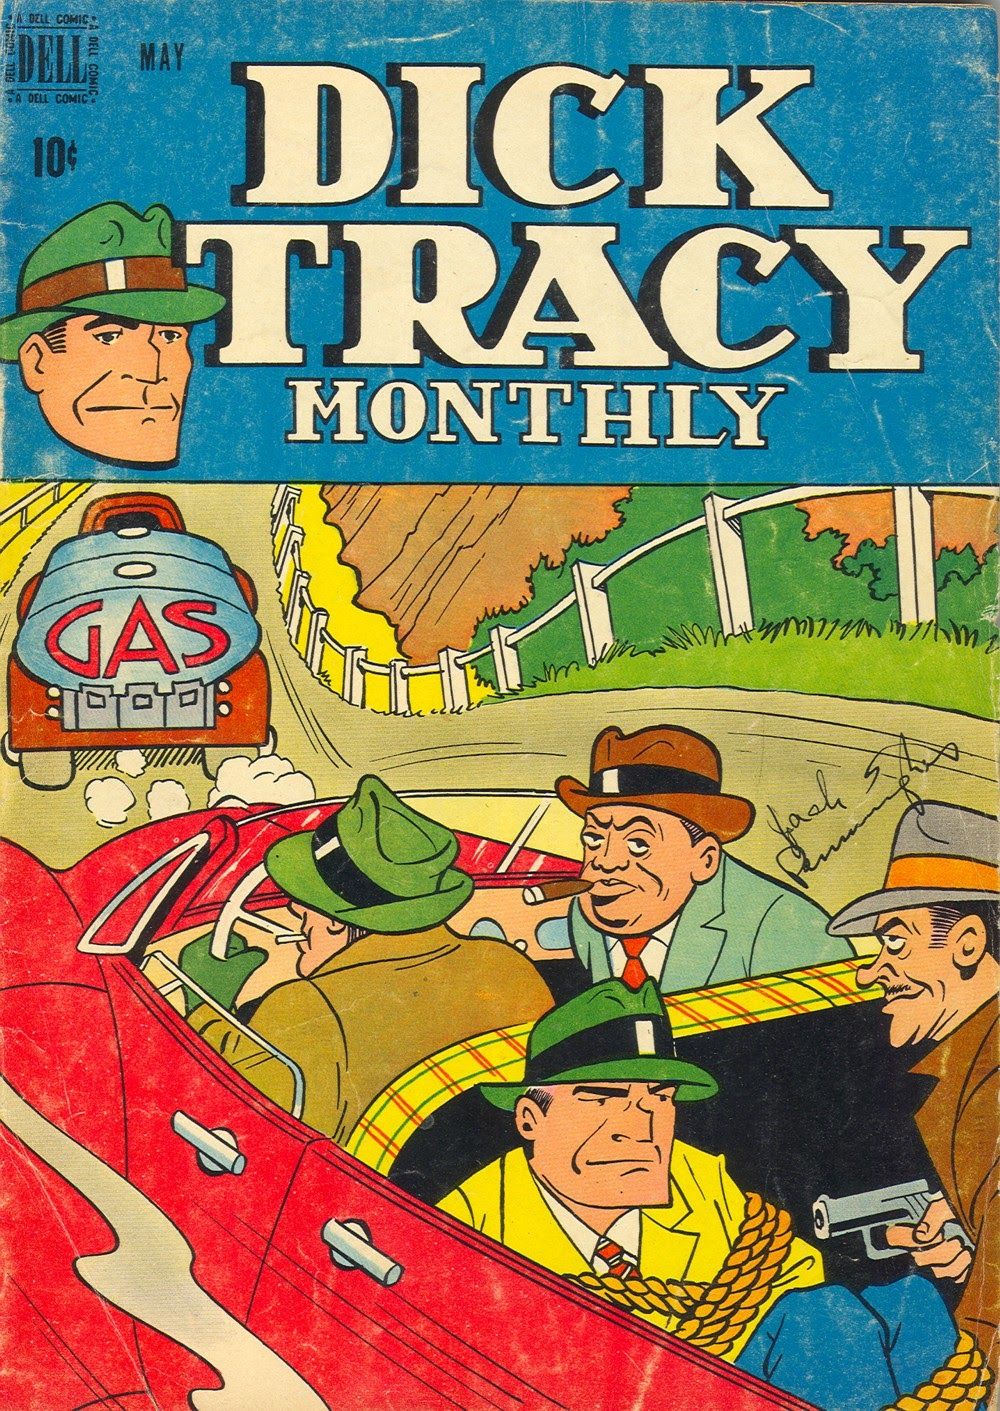 Dick Tracy Monthly 17 Page 1